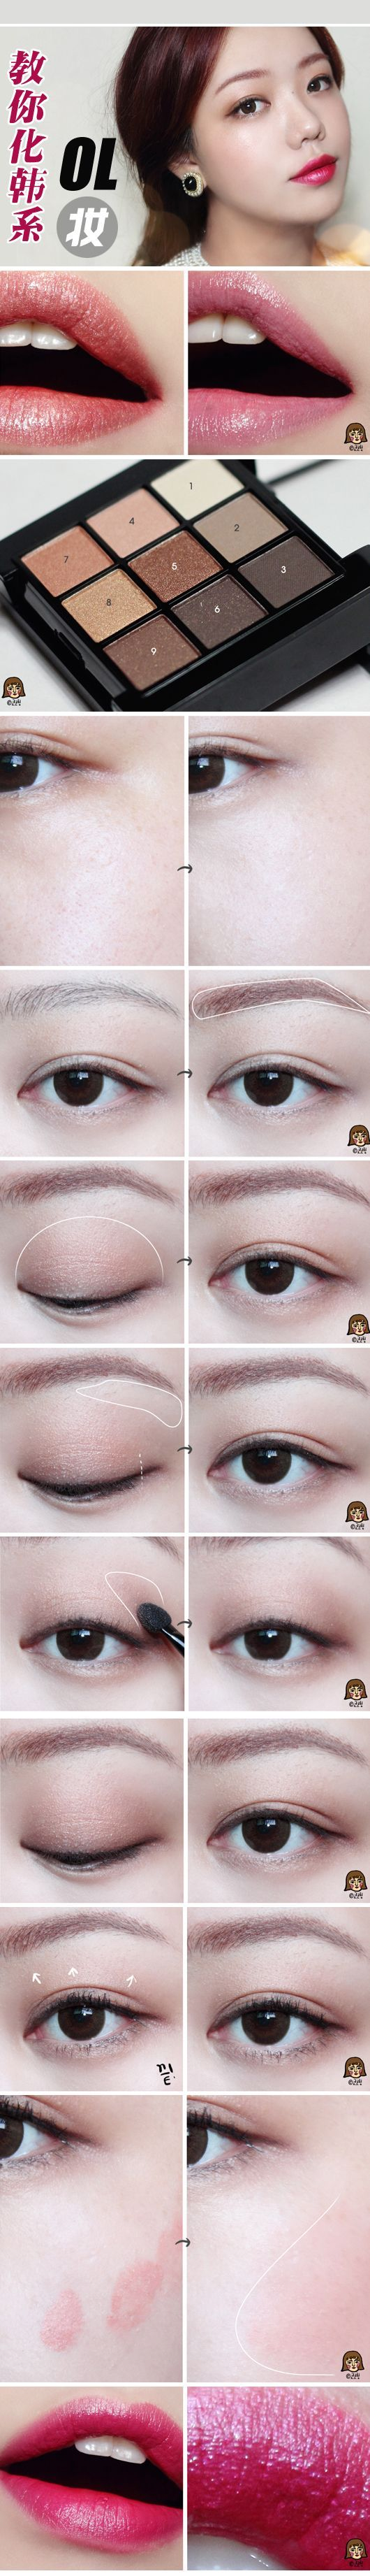 Dali Extra Size Brown circle lens favlens.com #Korea #makeup